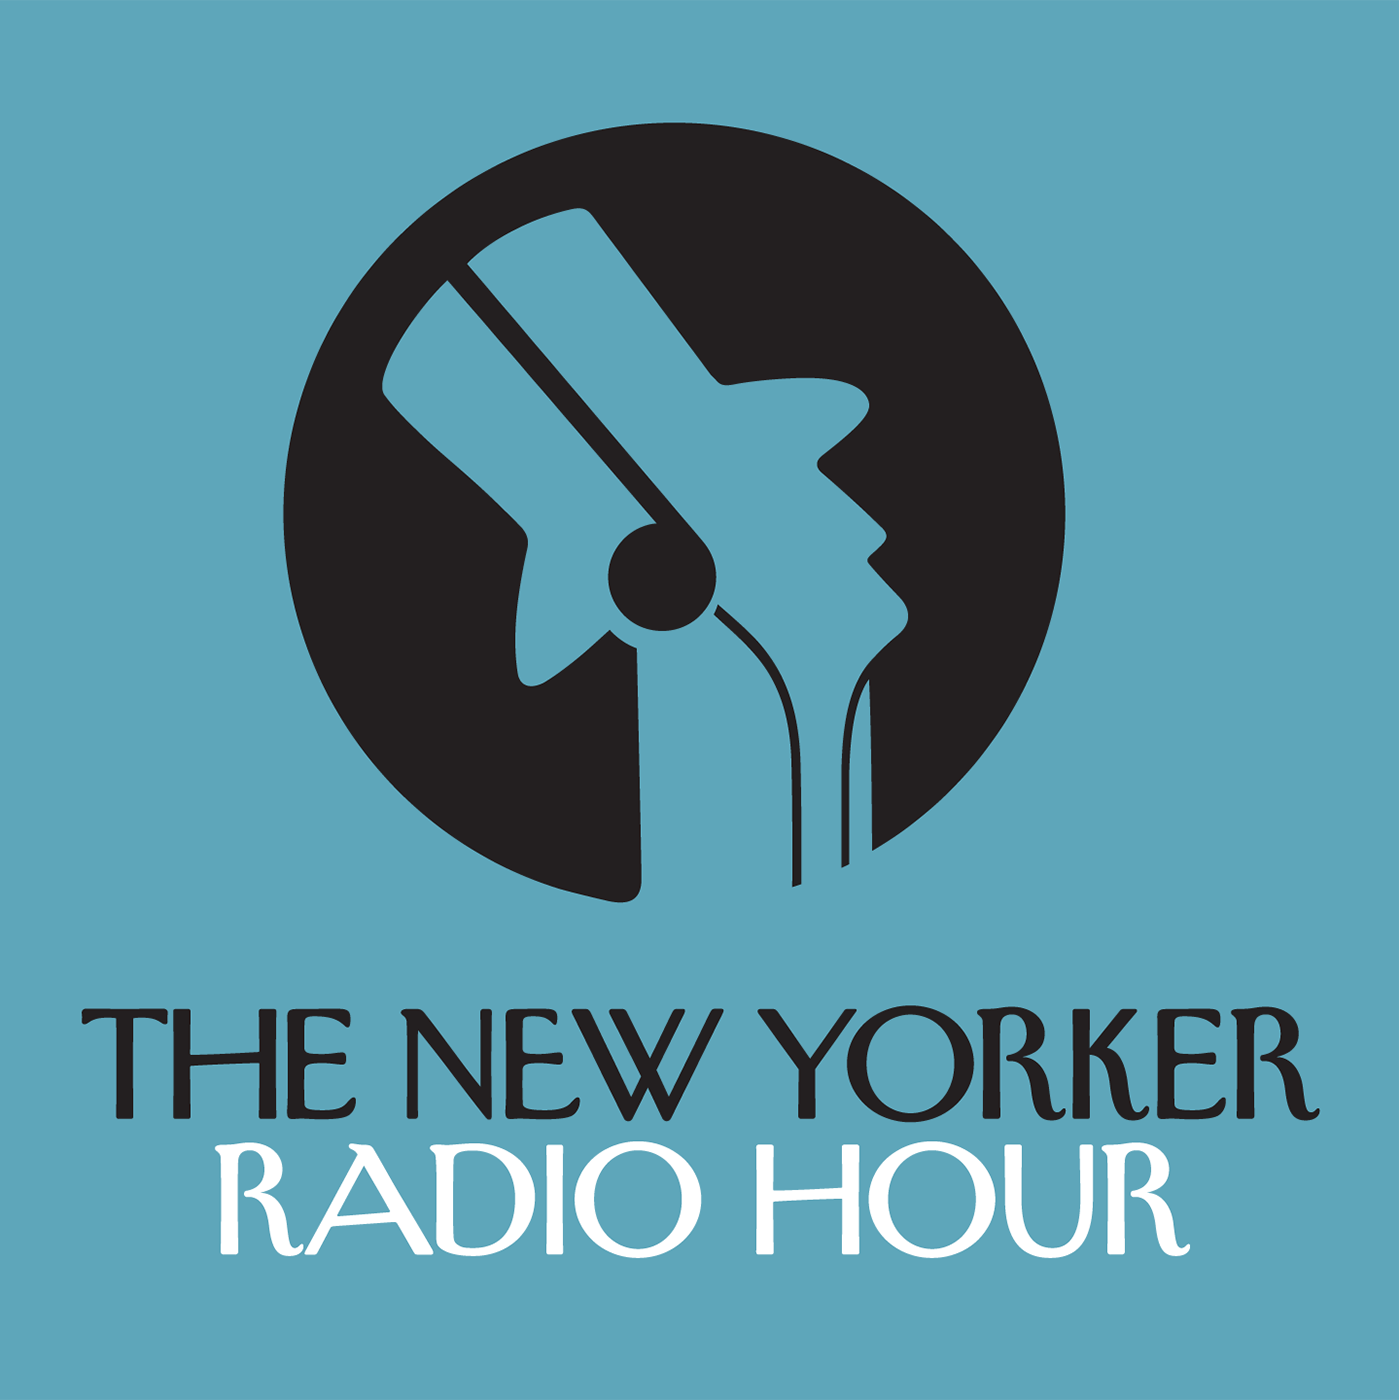 The New Yorker Radio Hour by WNYC Studios and The New Yorker - Hosted by David Remnick, this profound podcast discusses an indescribable multitude of topics in the heart of one of the must bustling cities. Uploaded frequently.